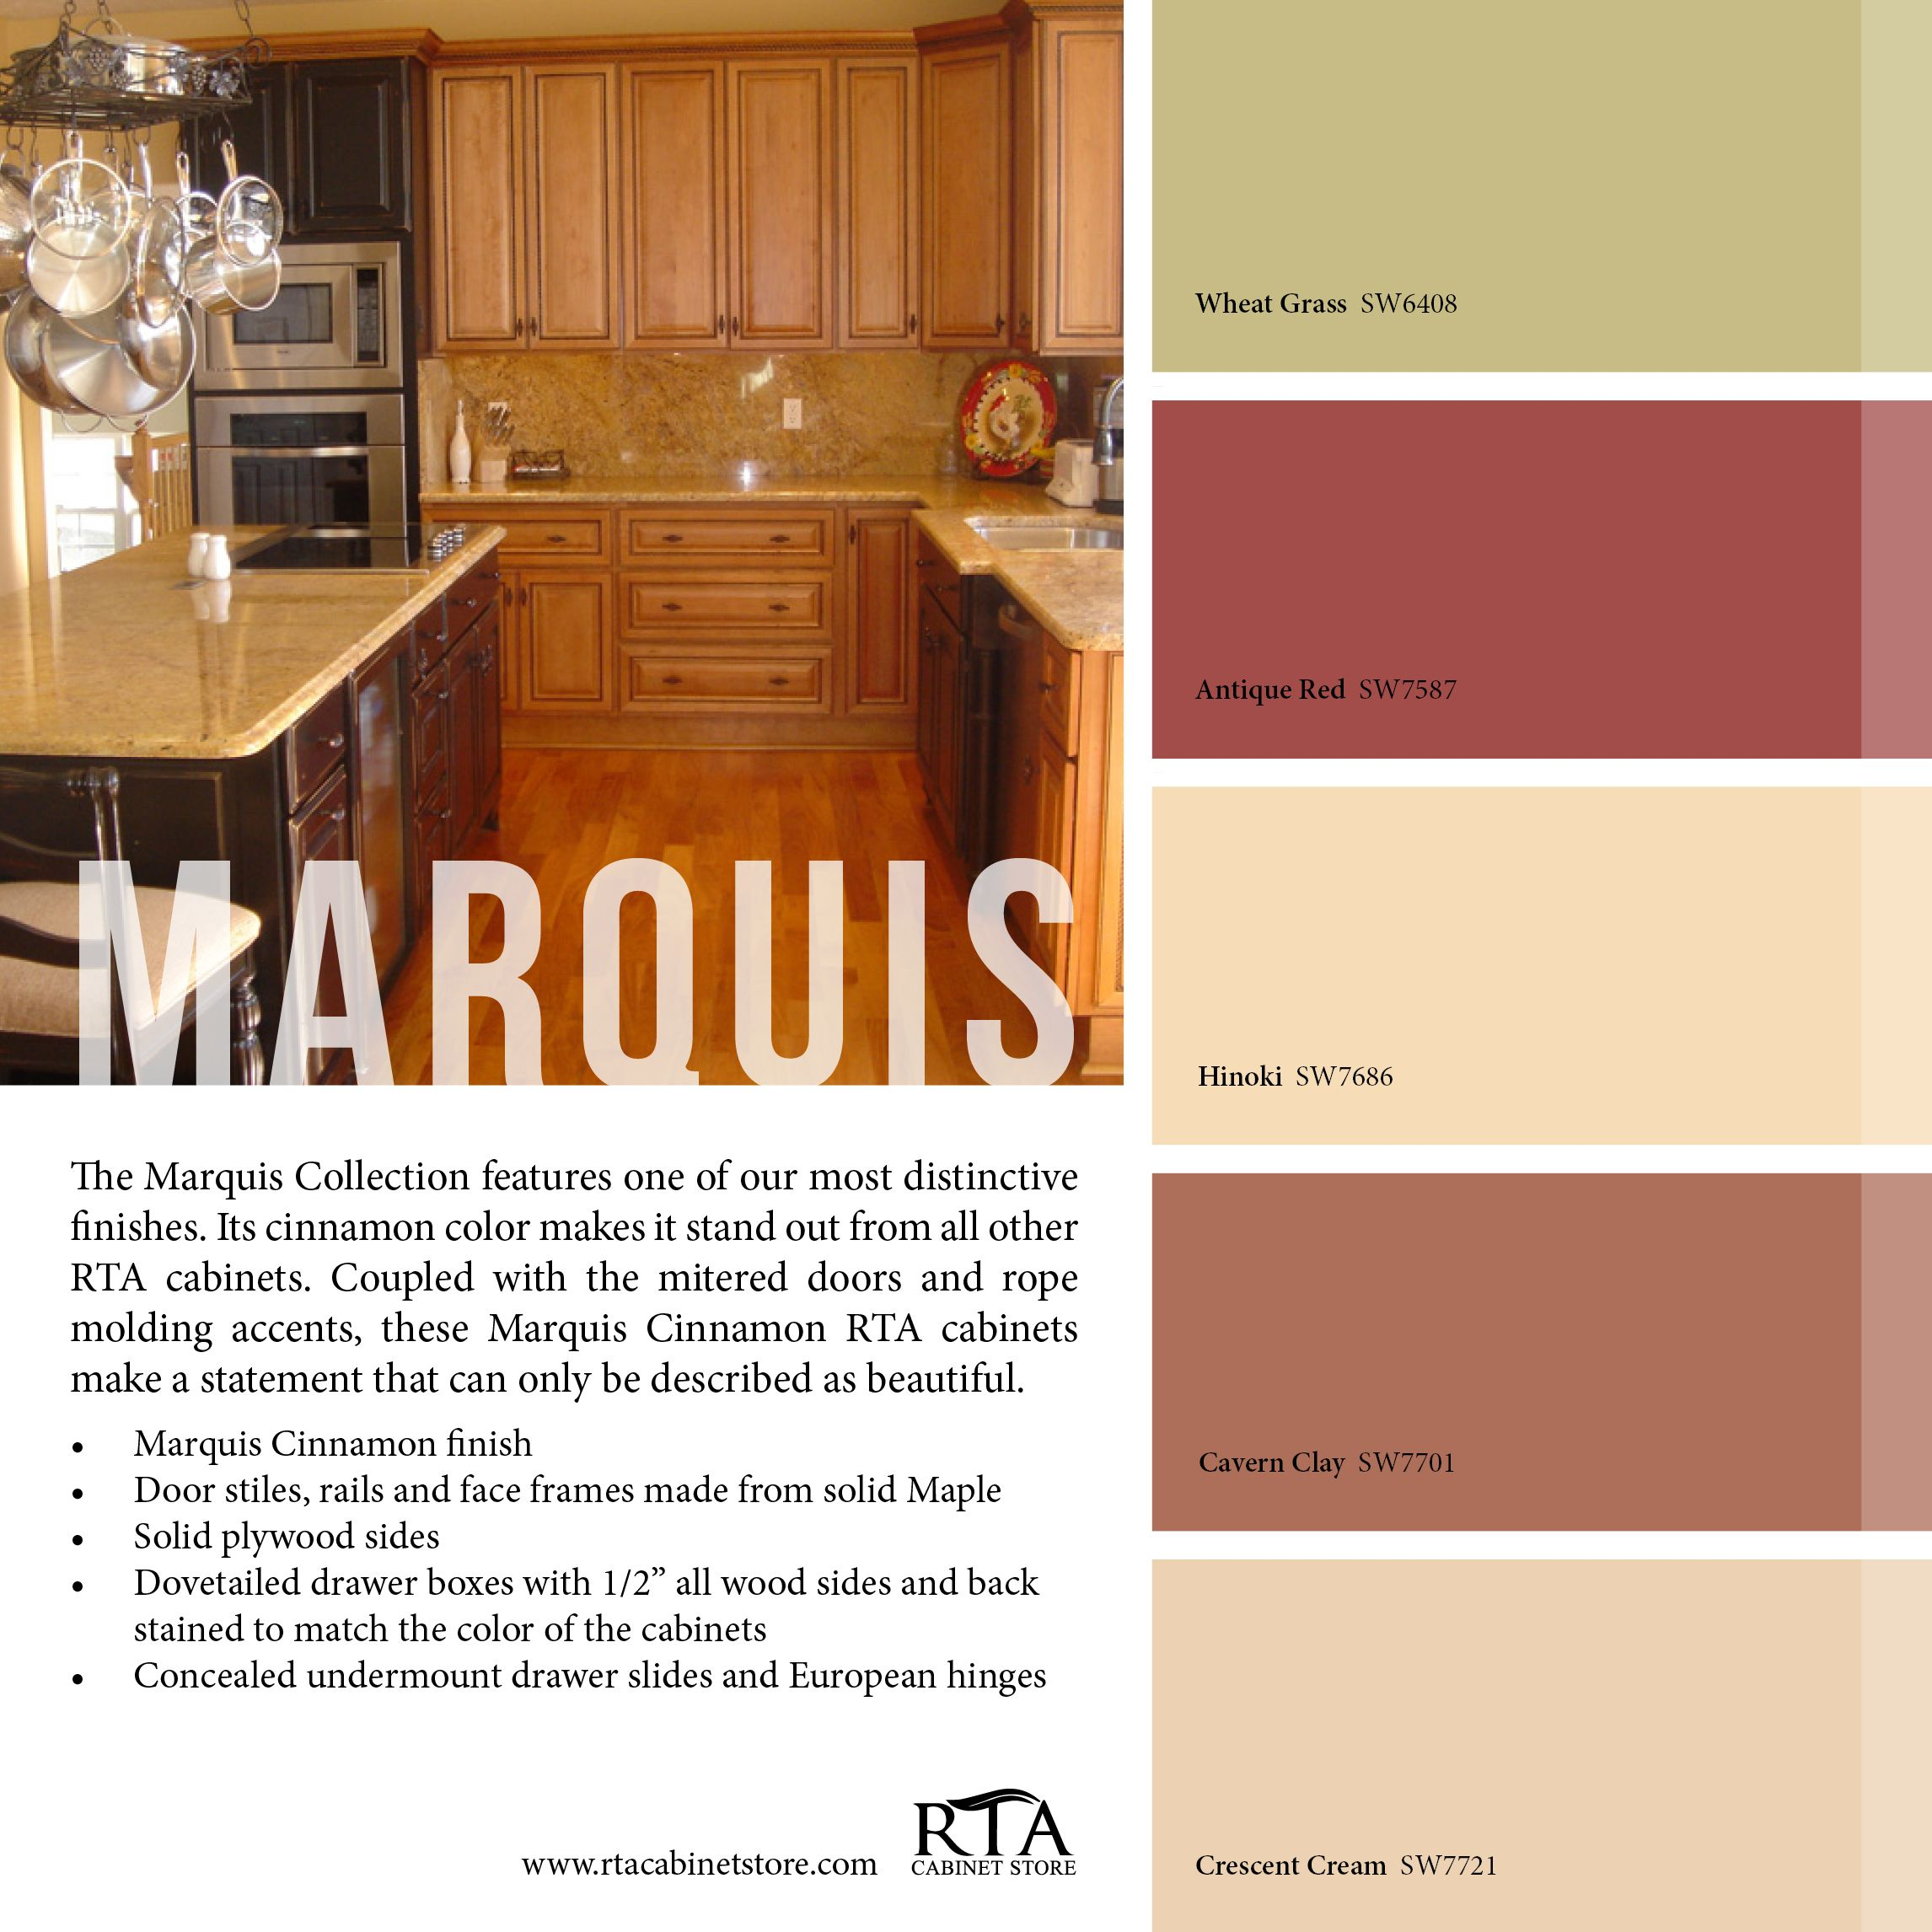 Light Colors With Oak Kitchen Cabinets: Color Palette To Go With Our Marquis Cinnamon Kitchen Cabinet Line